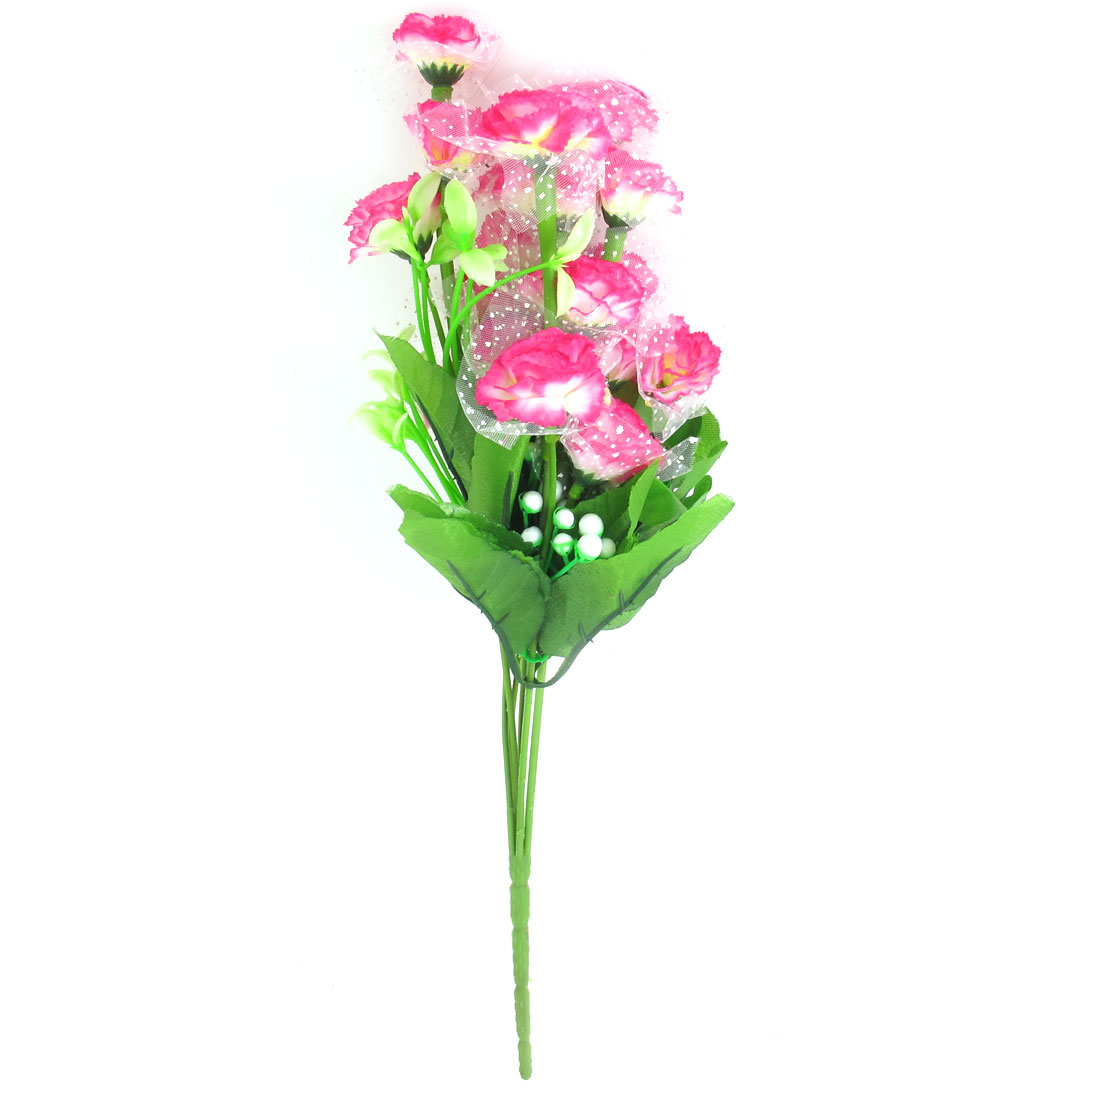 Home Office Decor Artificial Fabric Flower Bouquet Pink 35cm High